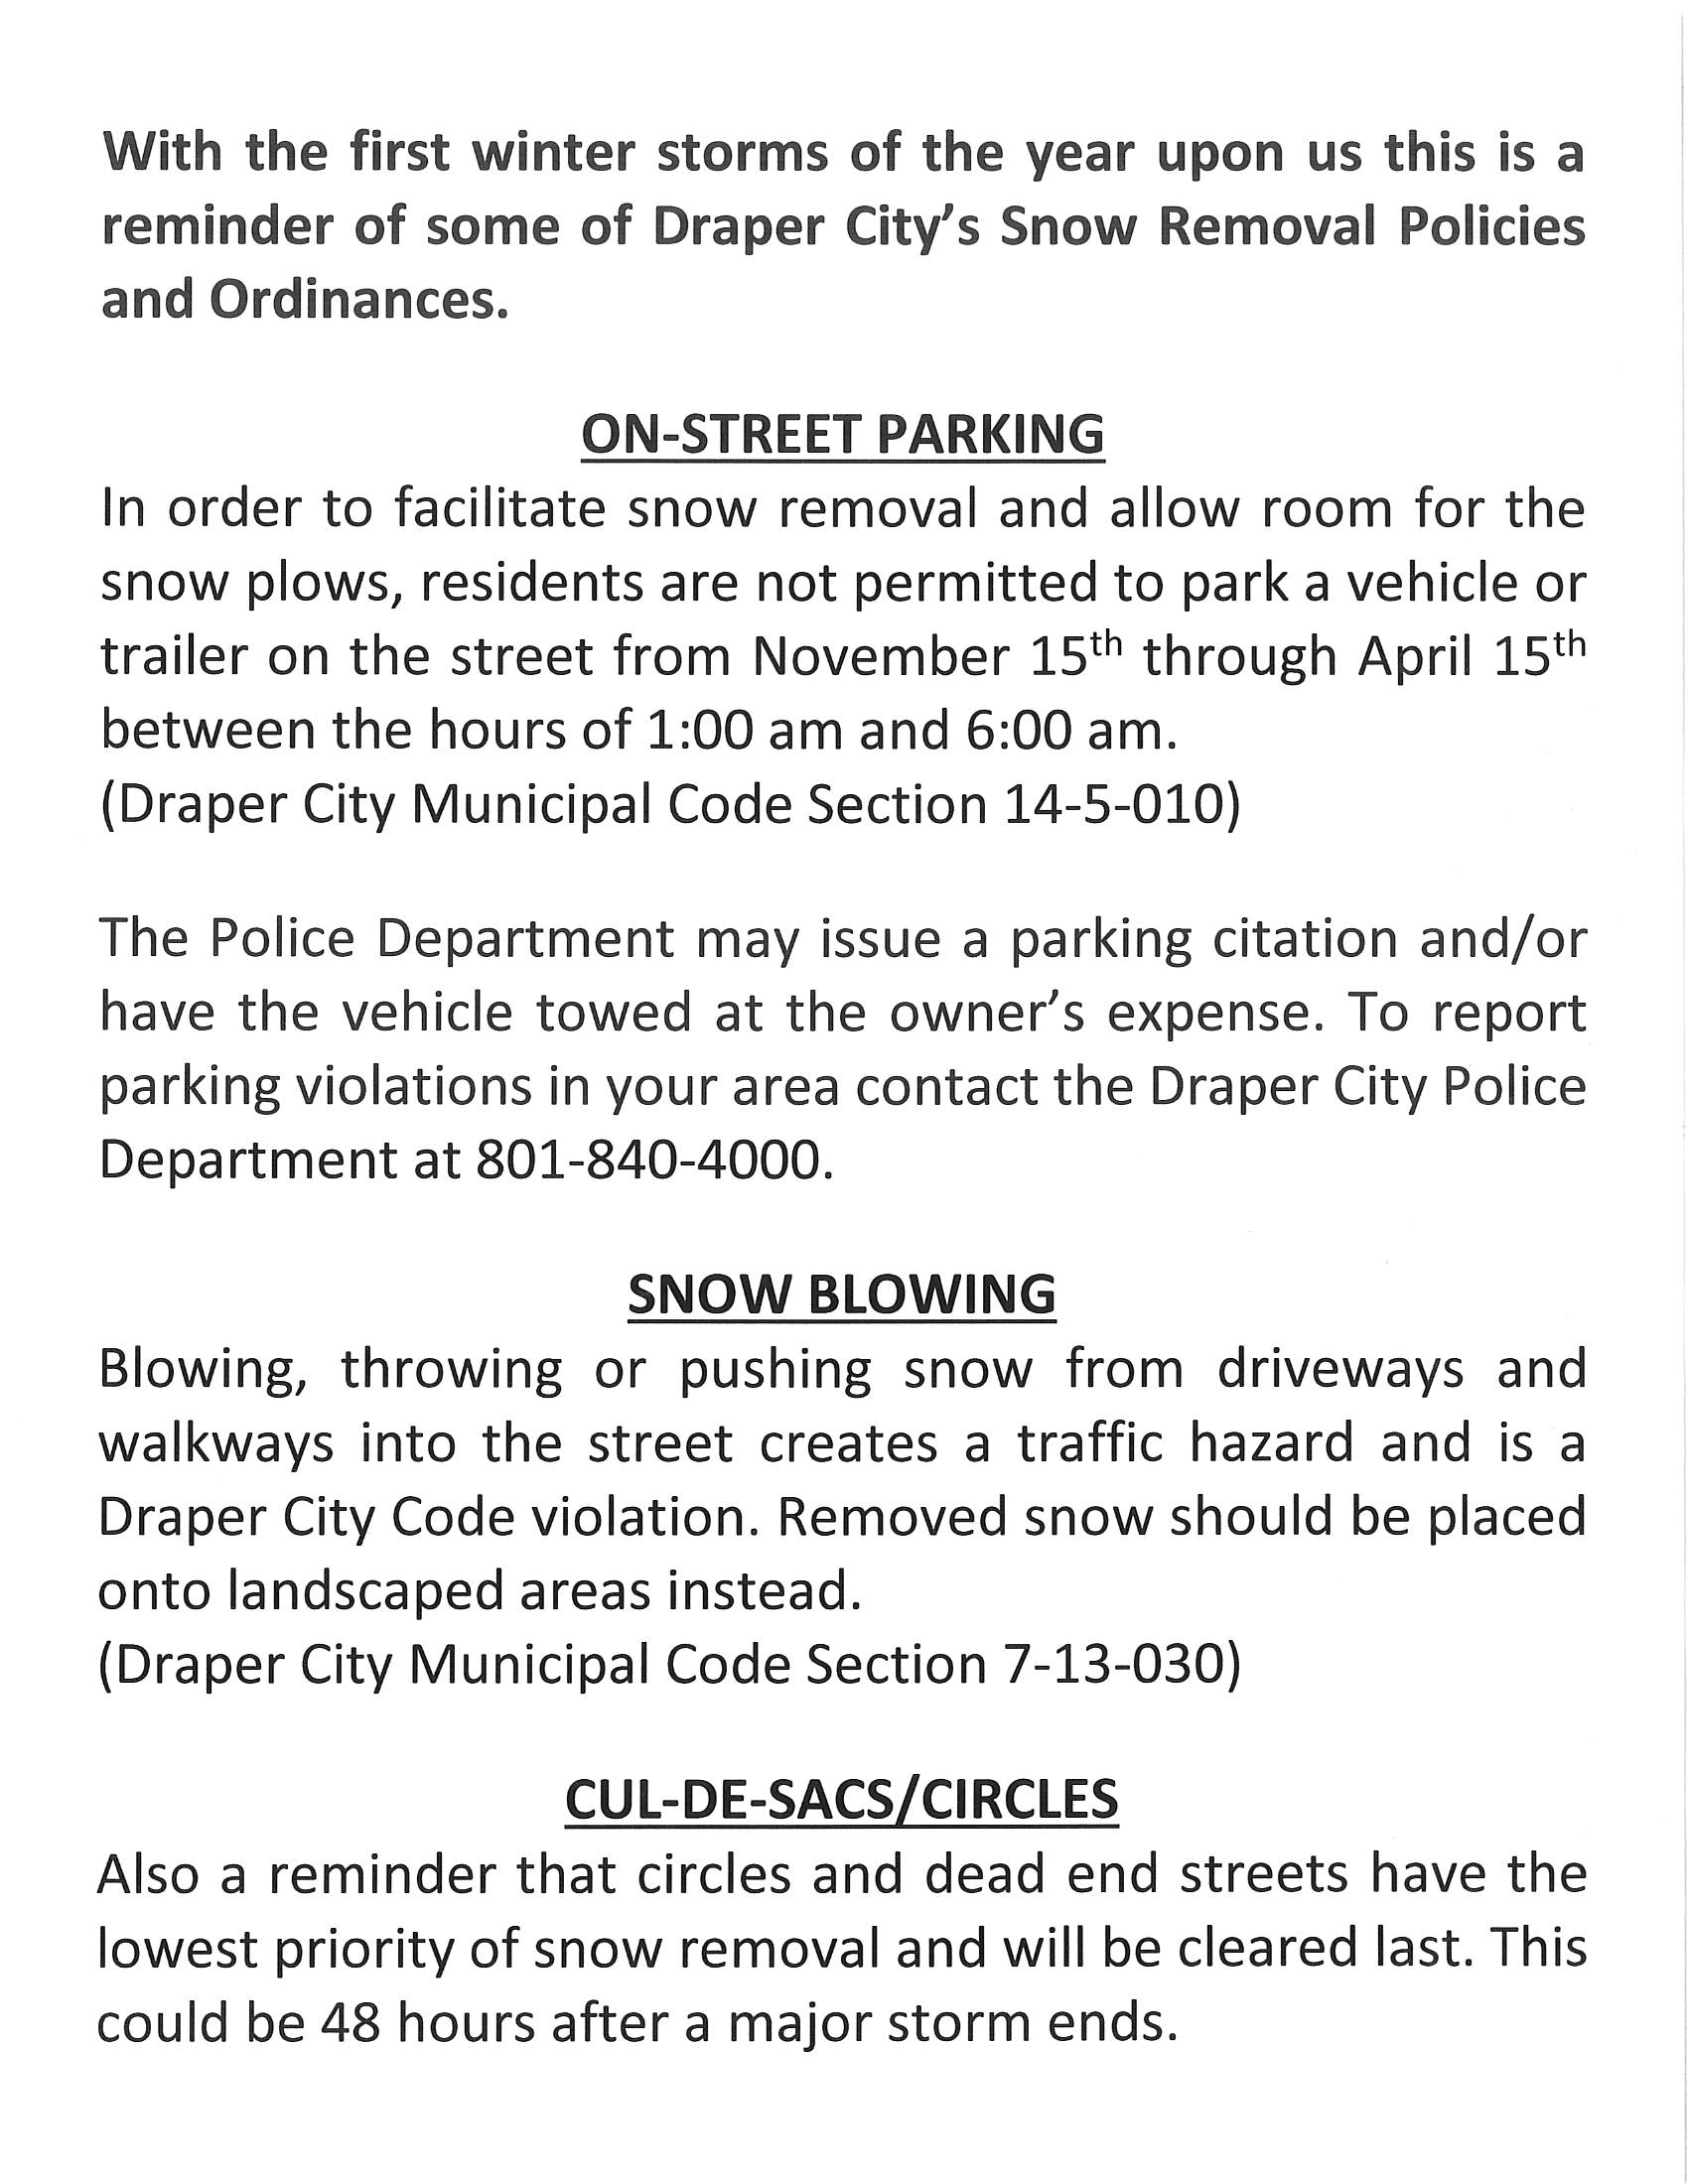 Snow Removal Policies and Ordinances